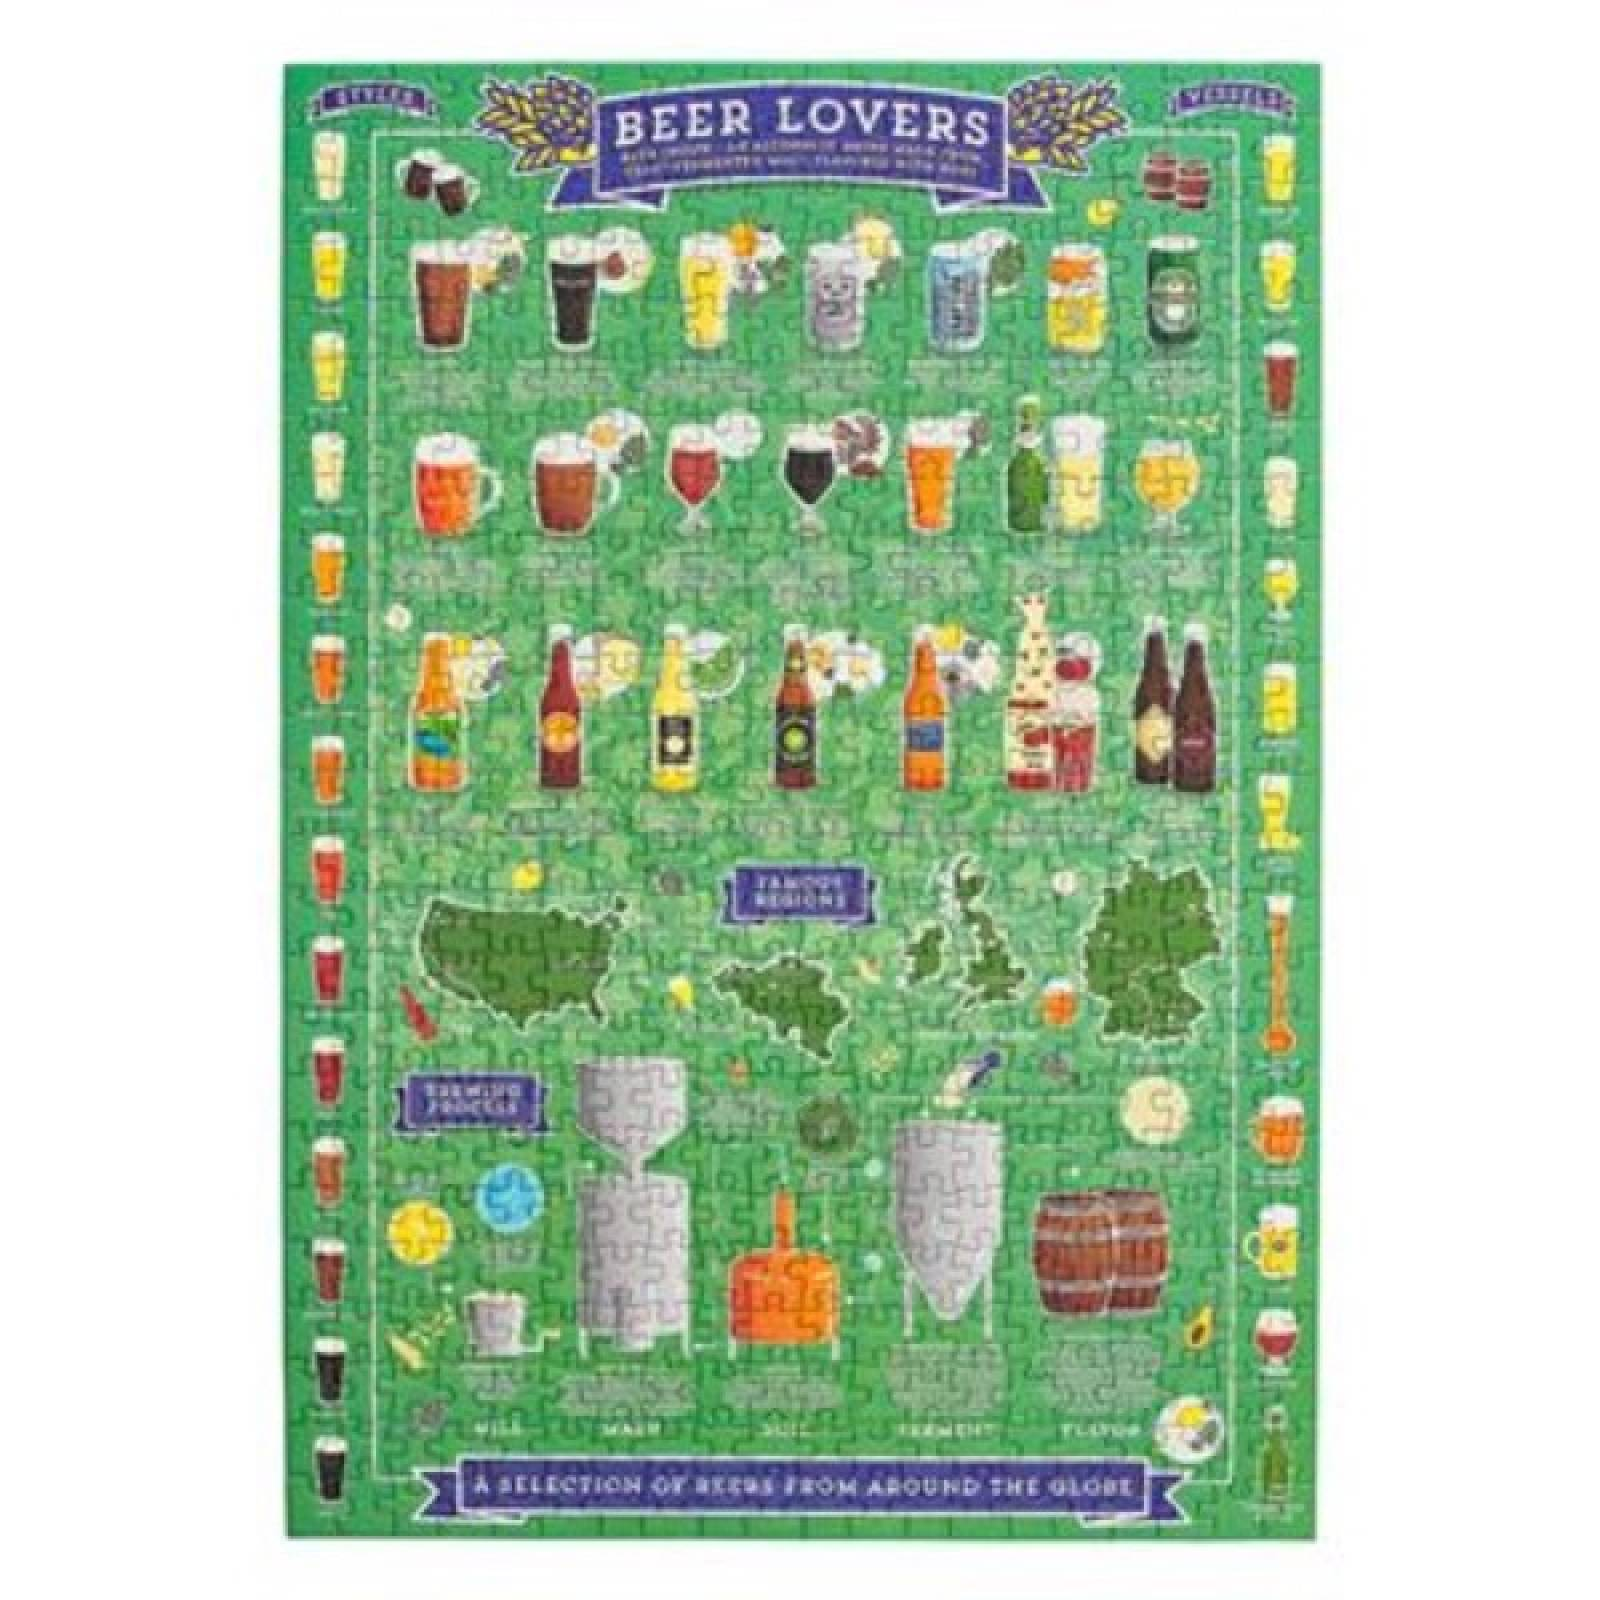 Beer Lovers' Jigsaw Puzzle 500 Pieces thumbnails